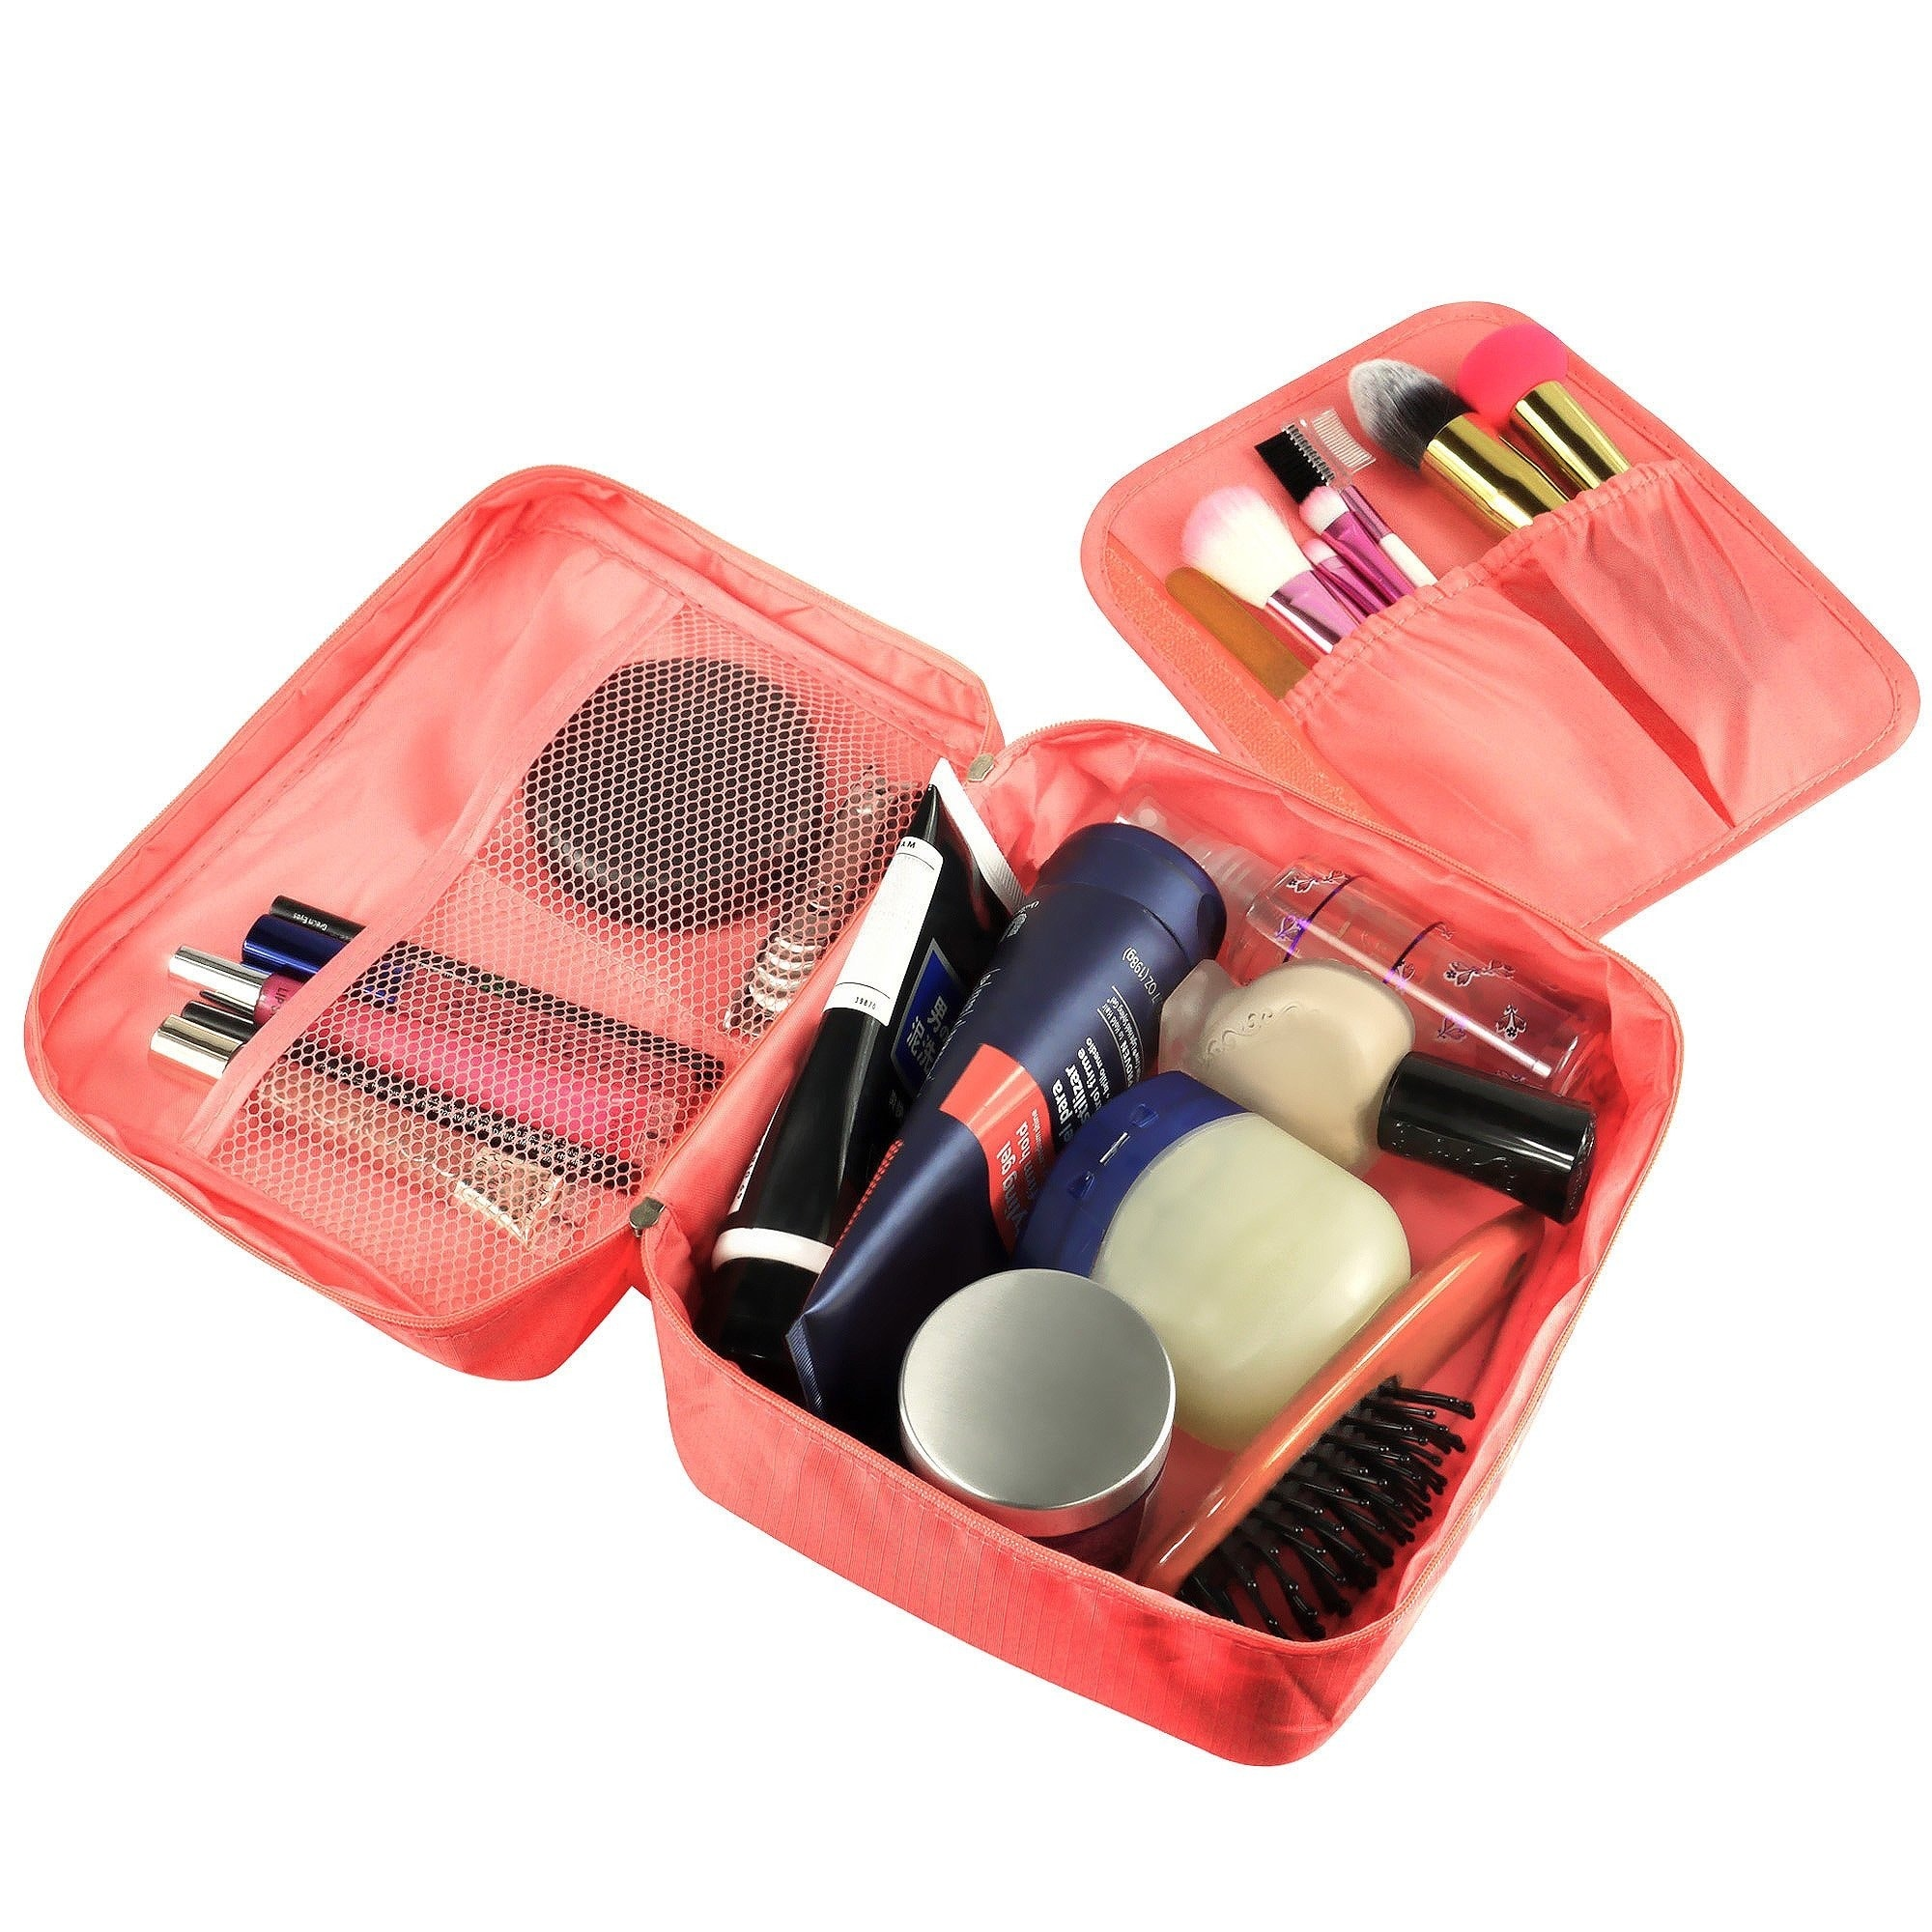 Zodaca Women Coral Travel Cosmetic Bag Makeup Case Toilet...